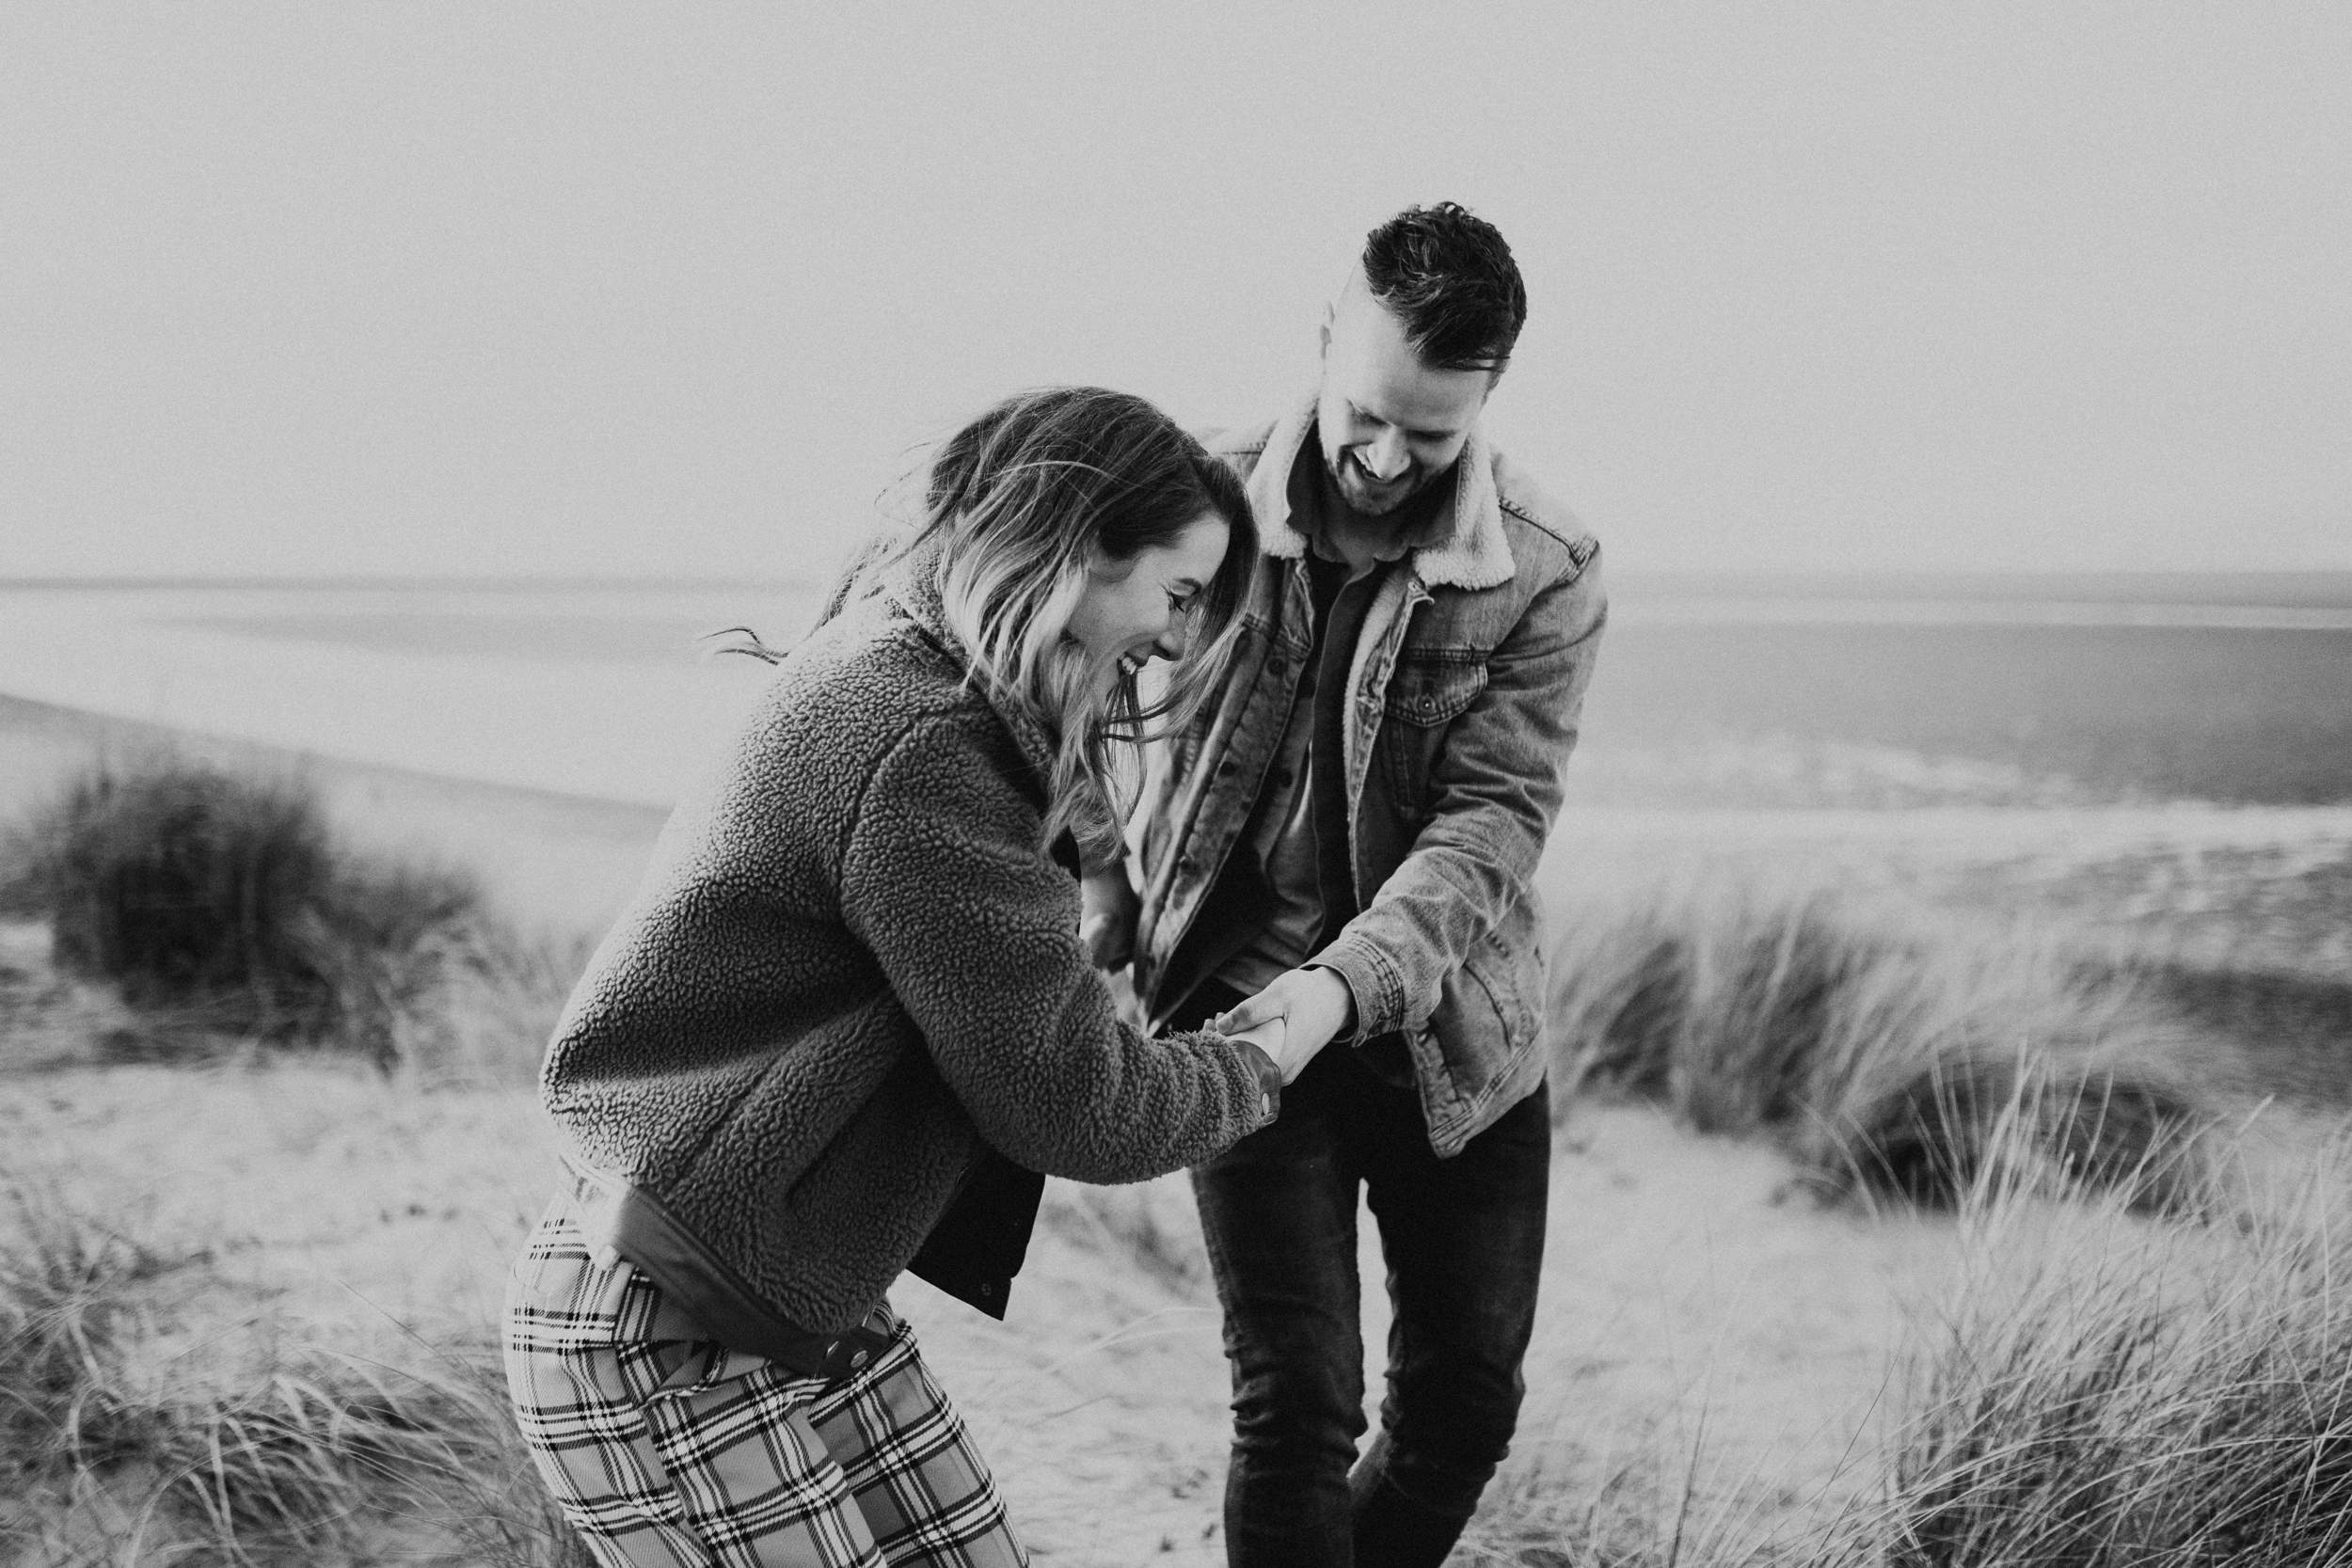 Claire-Liam-Beach-Coastal-Engagement-Session-Norfolk-Darina-Stoda-Photography-7.jpg